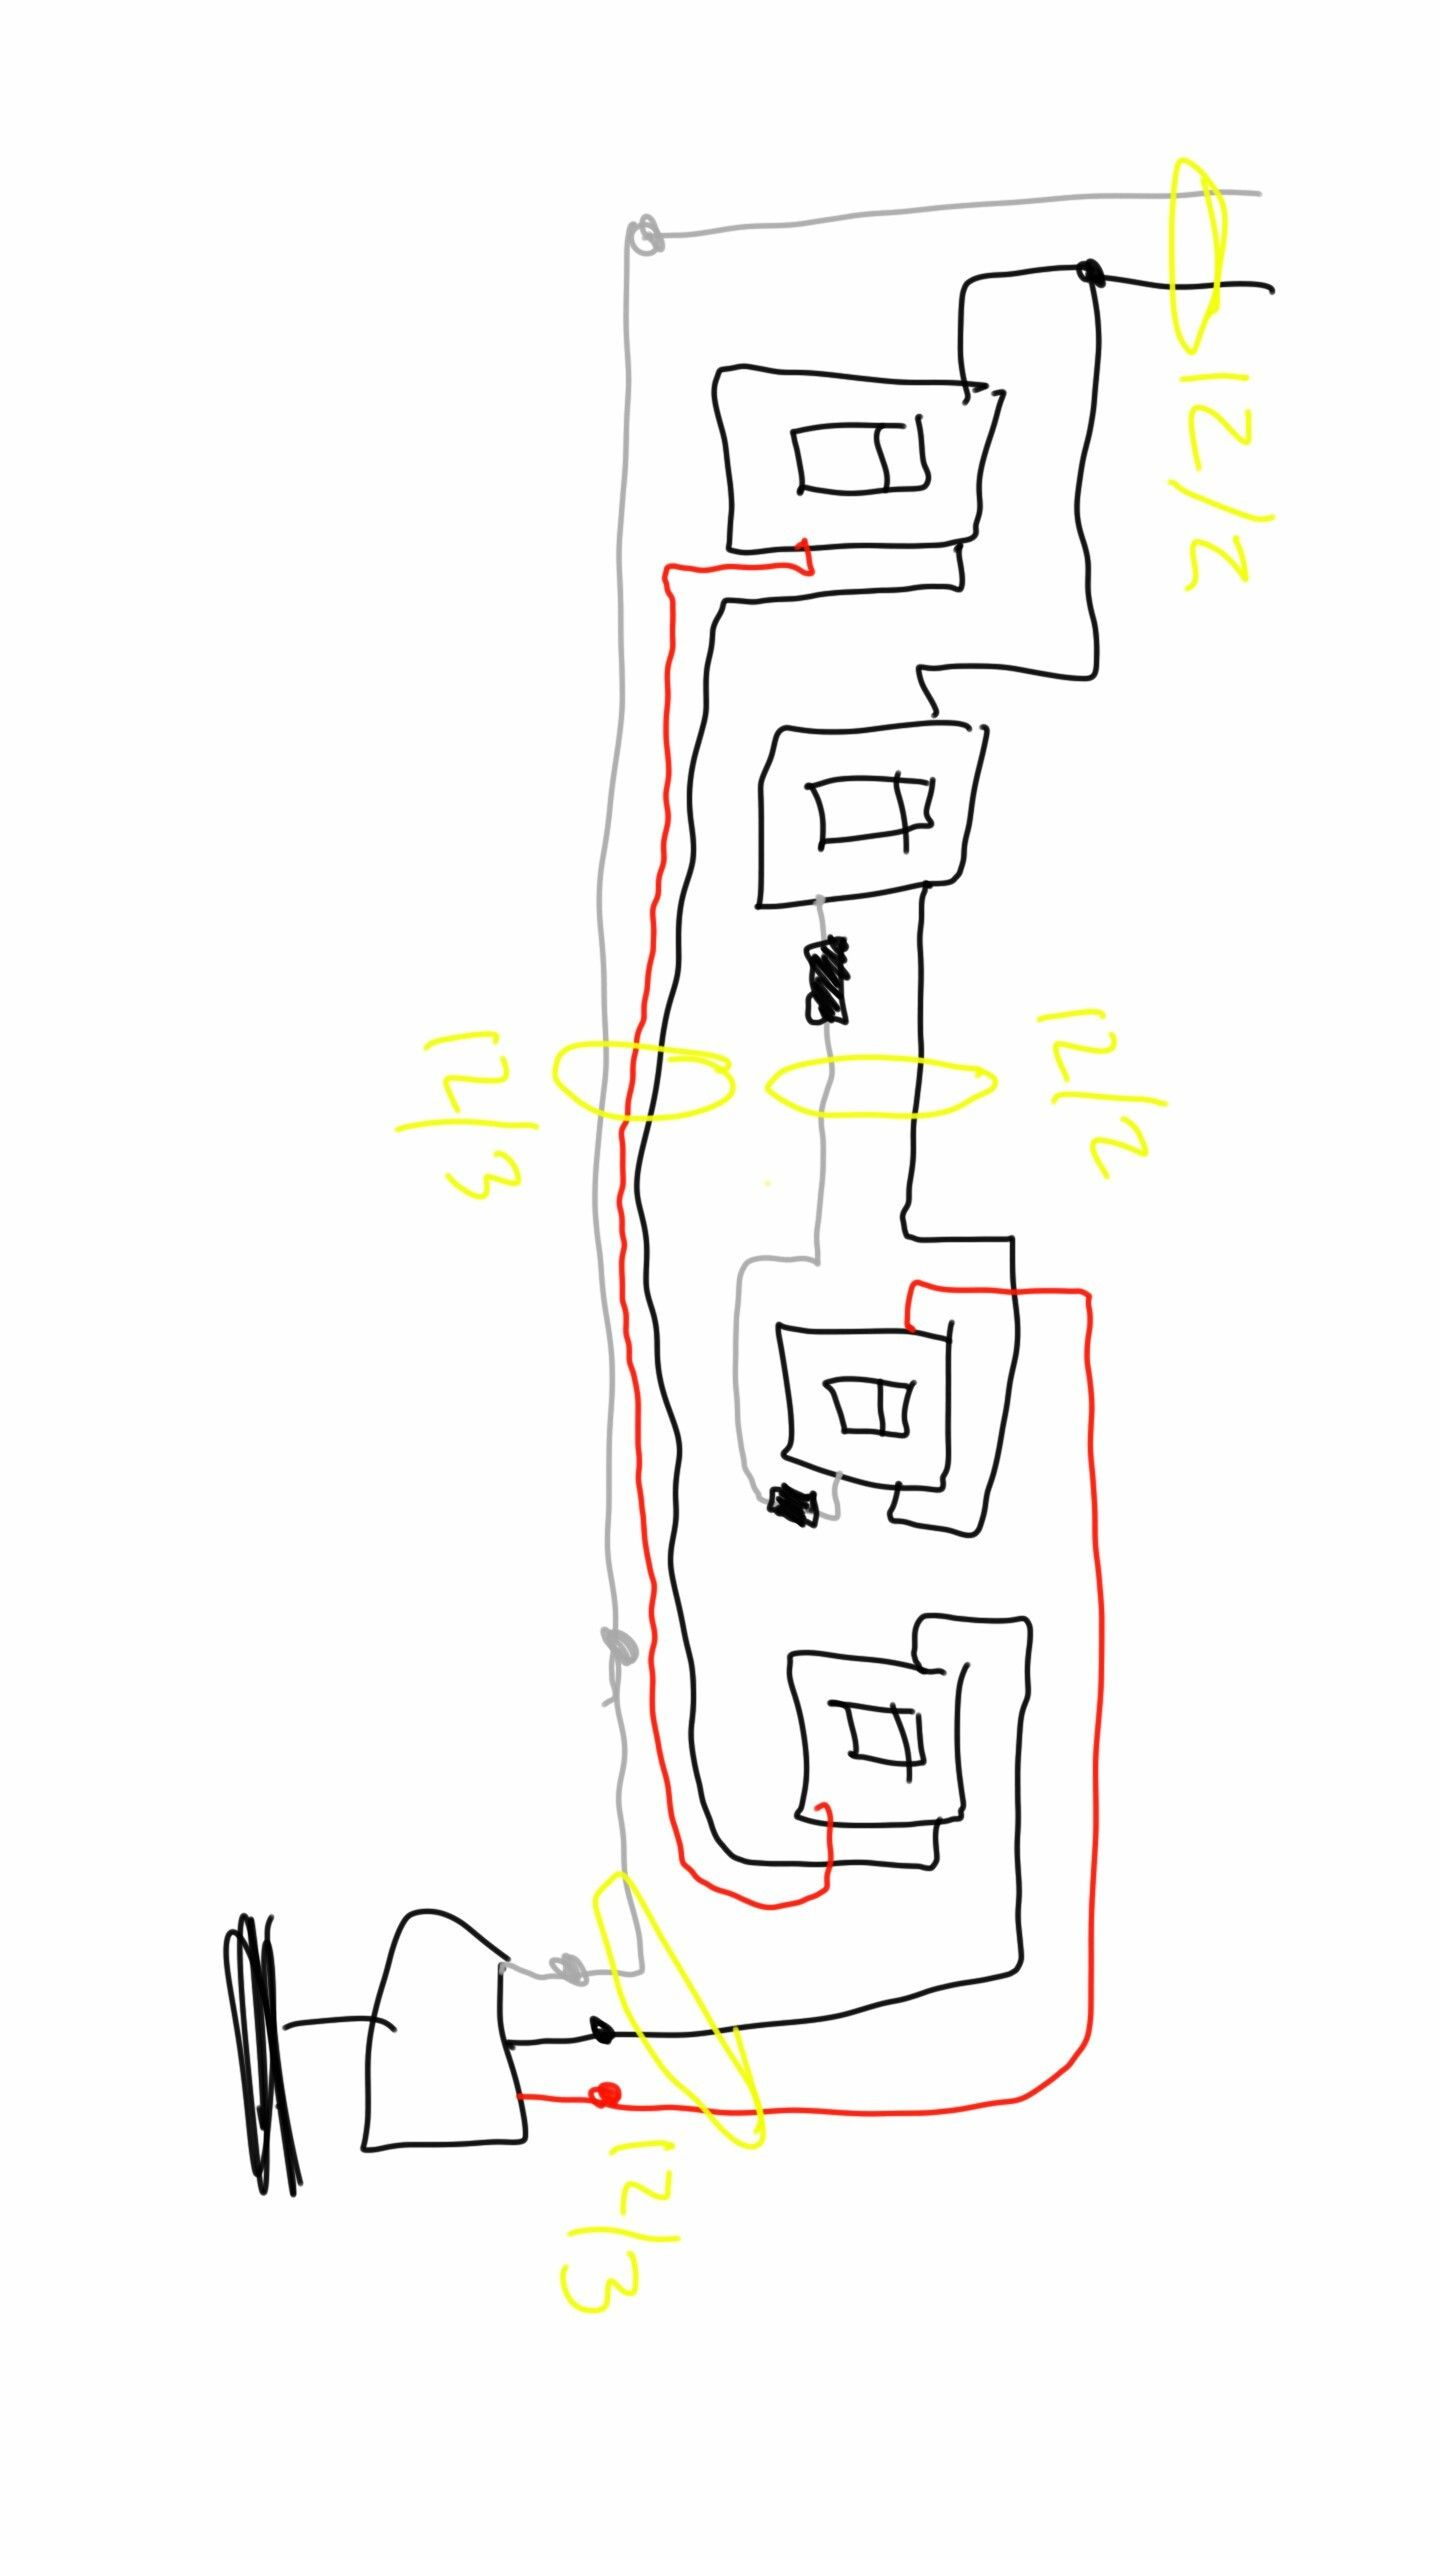 Elegant Wiring Diagram For Fan Light Switch  Diagrams  Digramssample  Diagramimages Check More